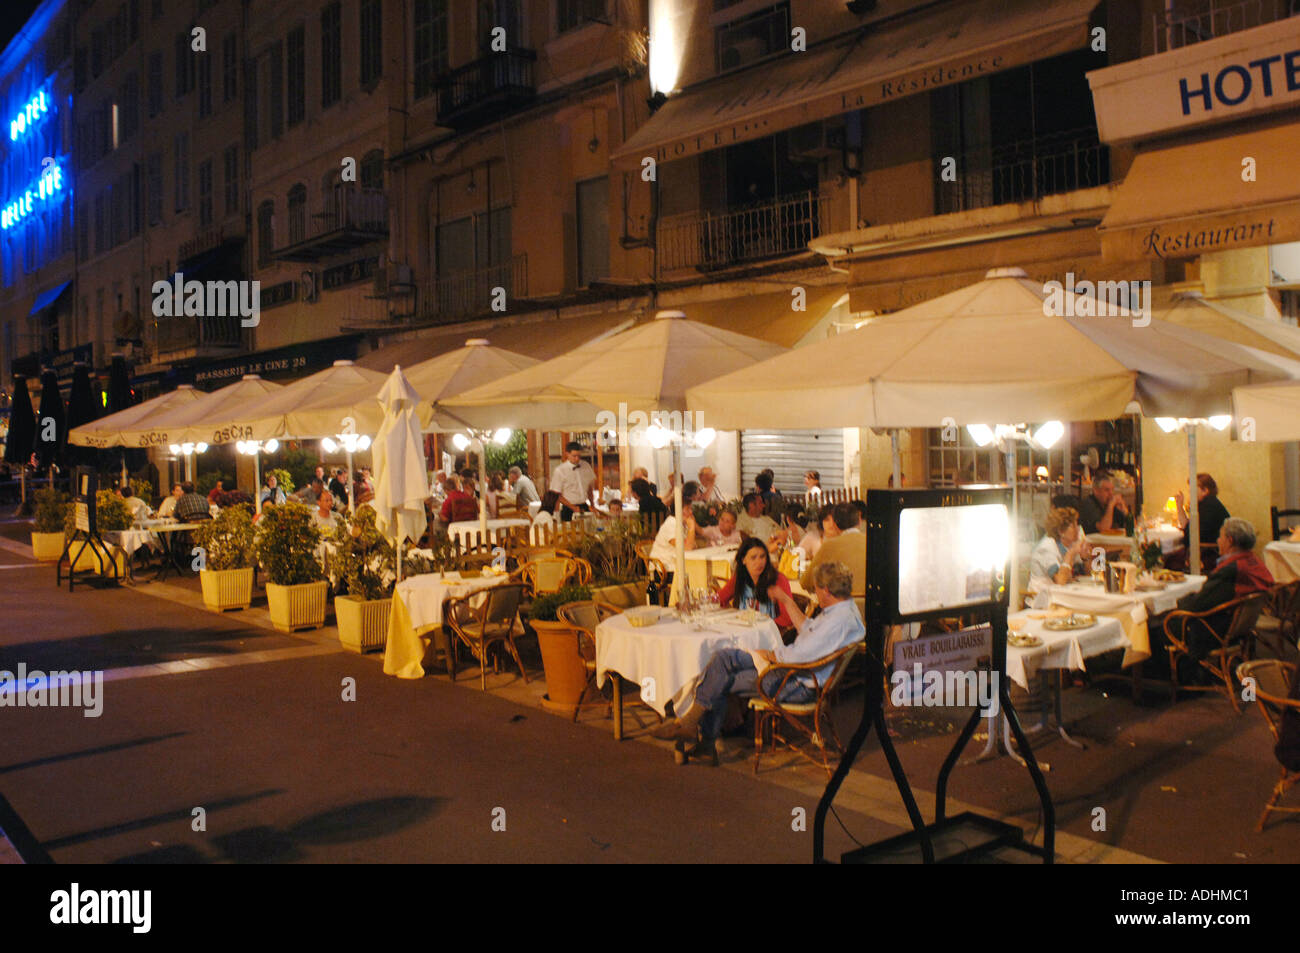 France marseille le vieux port the old port outdoor dining - Restaurant bouillabaisse marseille vieux port ...